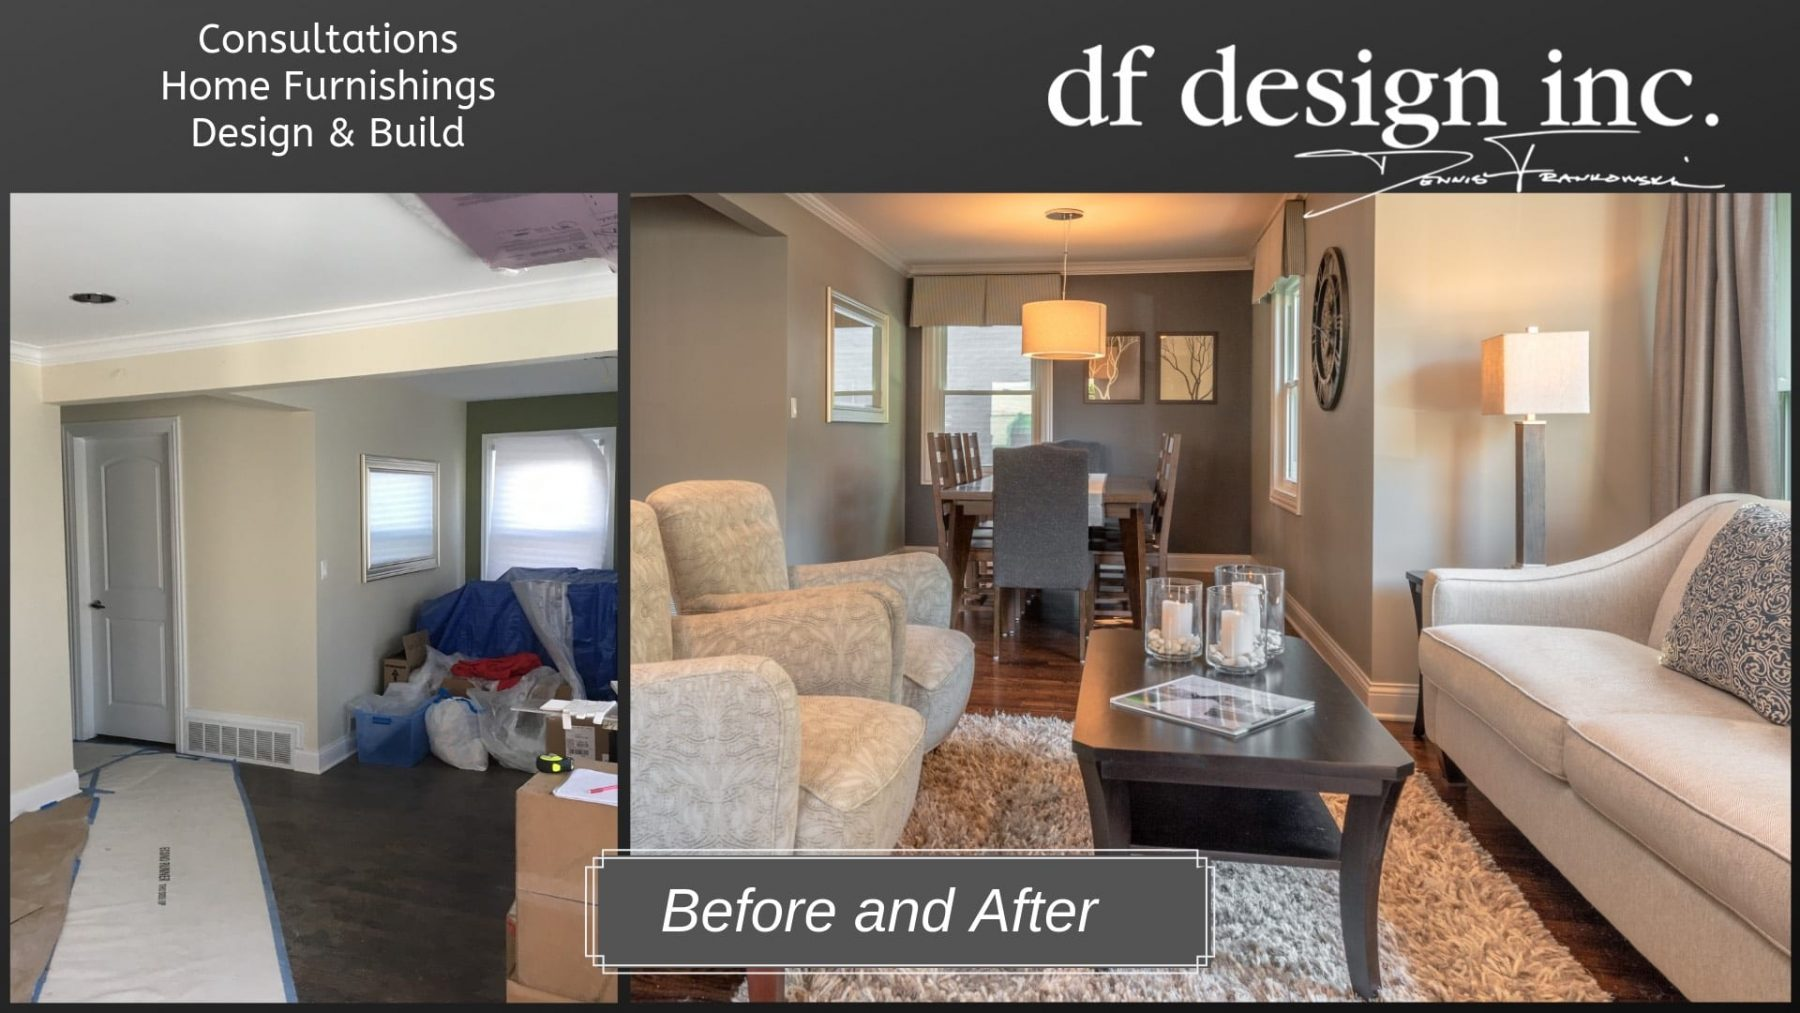 Interior designer In-home furniture consultant